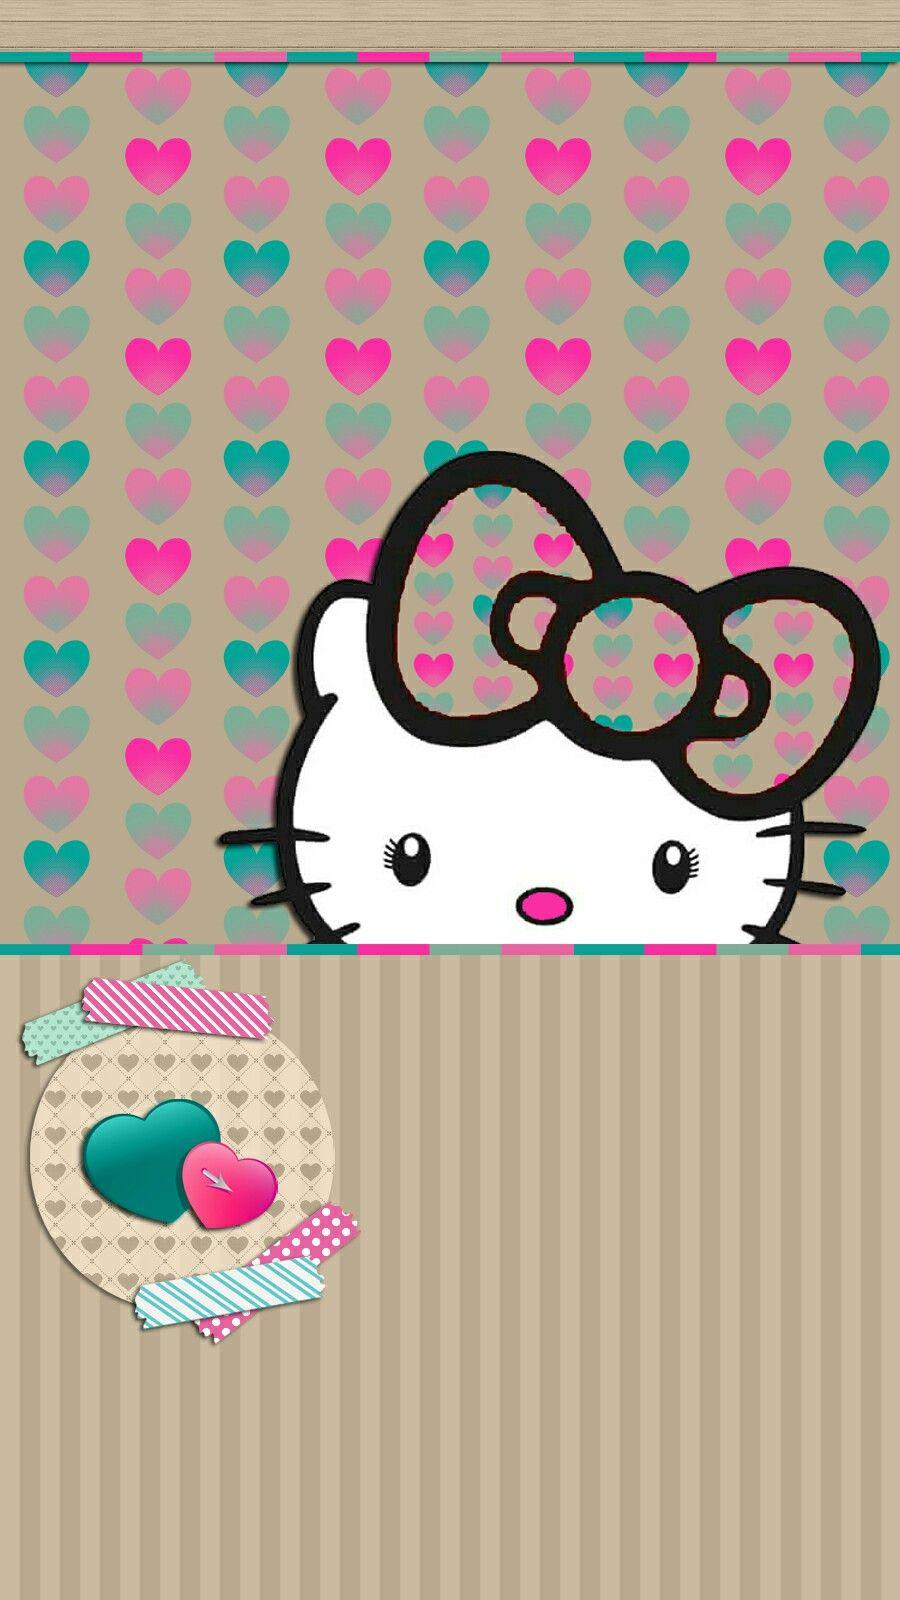 Fantastic Wallpaper Hello Kitty Vintage - fbc0bfb6eb0cc29aa12a6f85ce74db3d  Pictures_69532.jpg